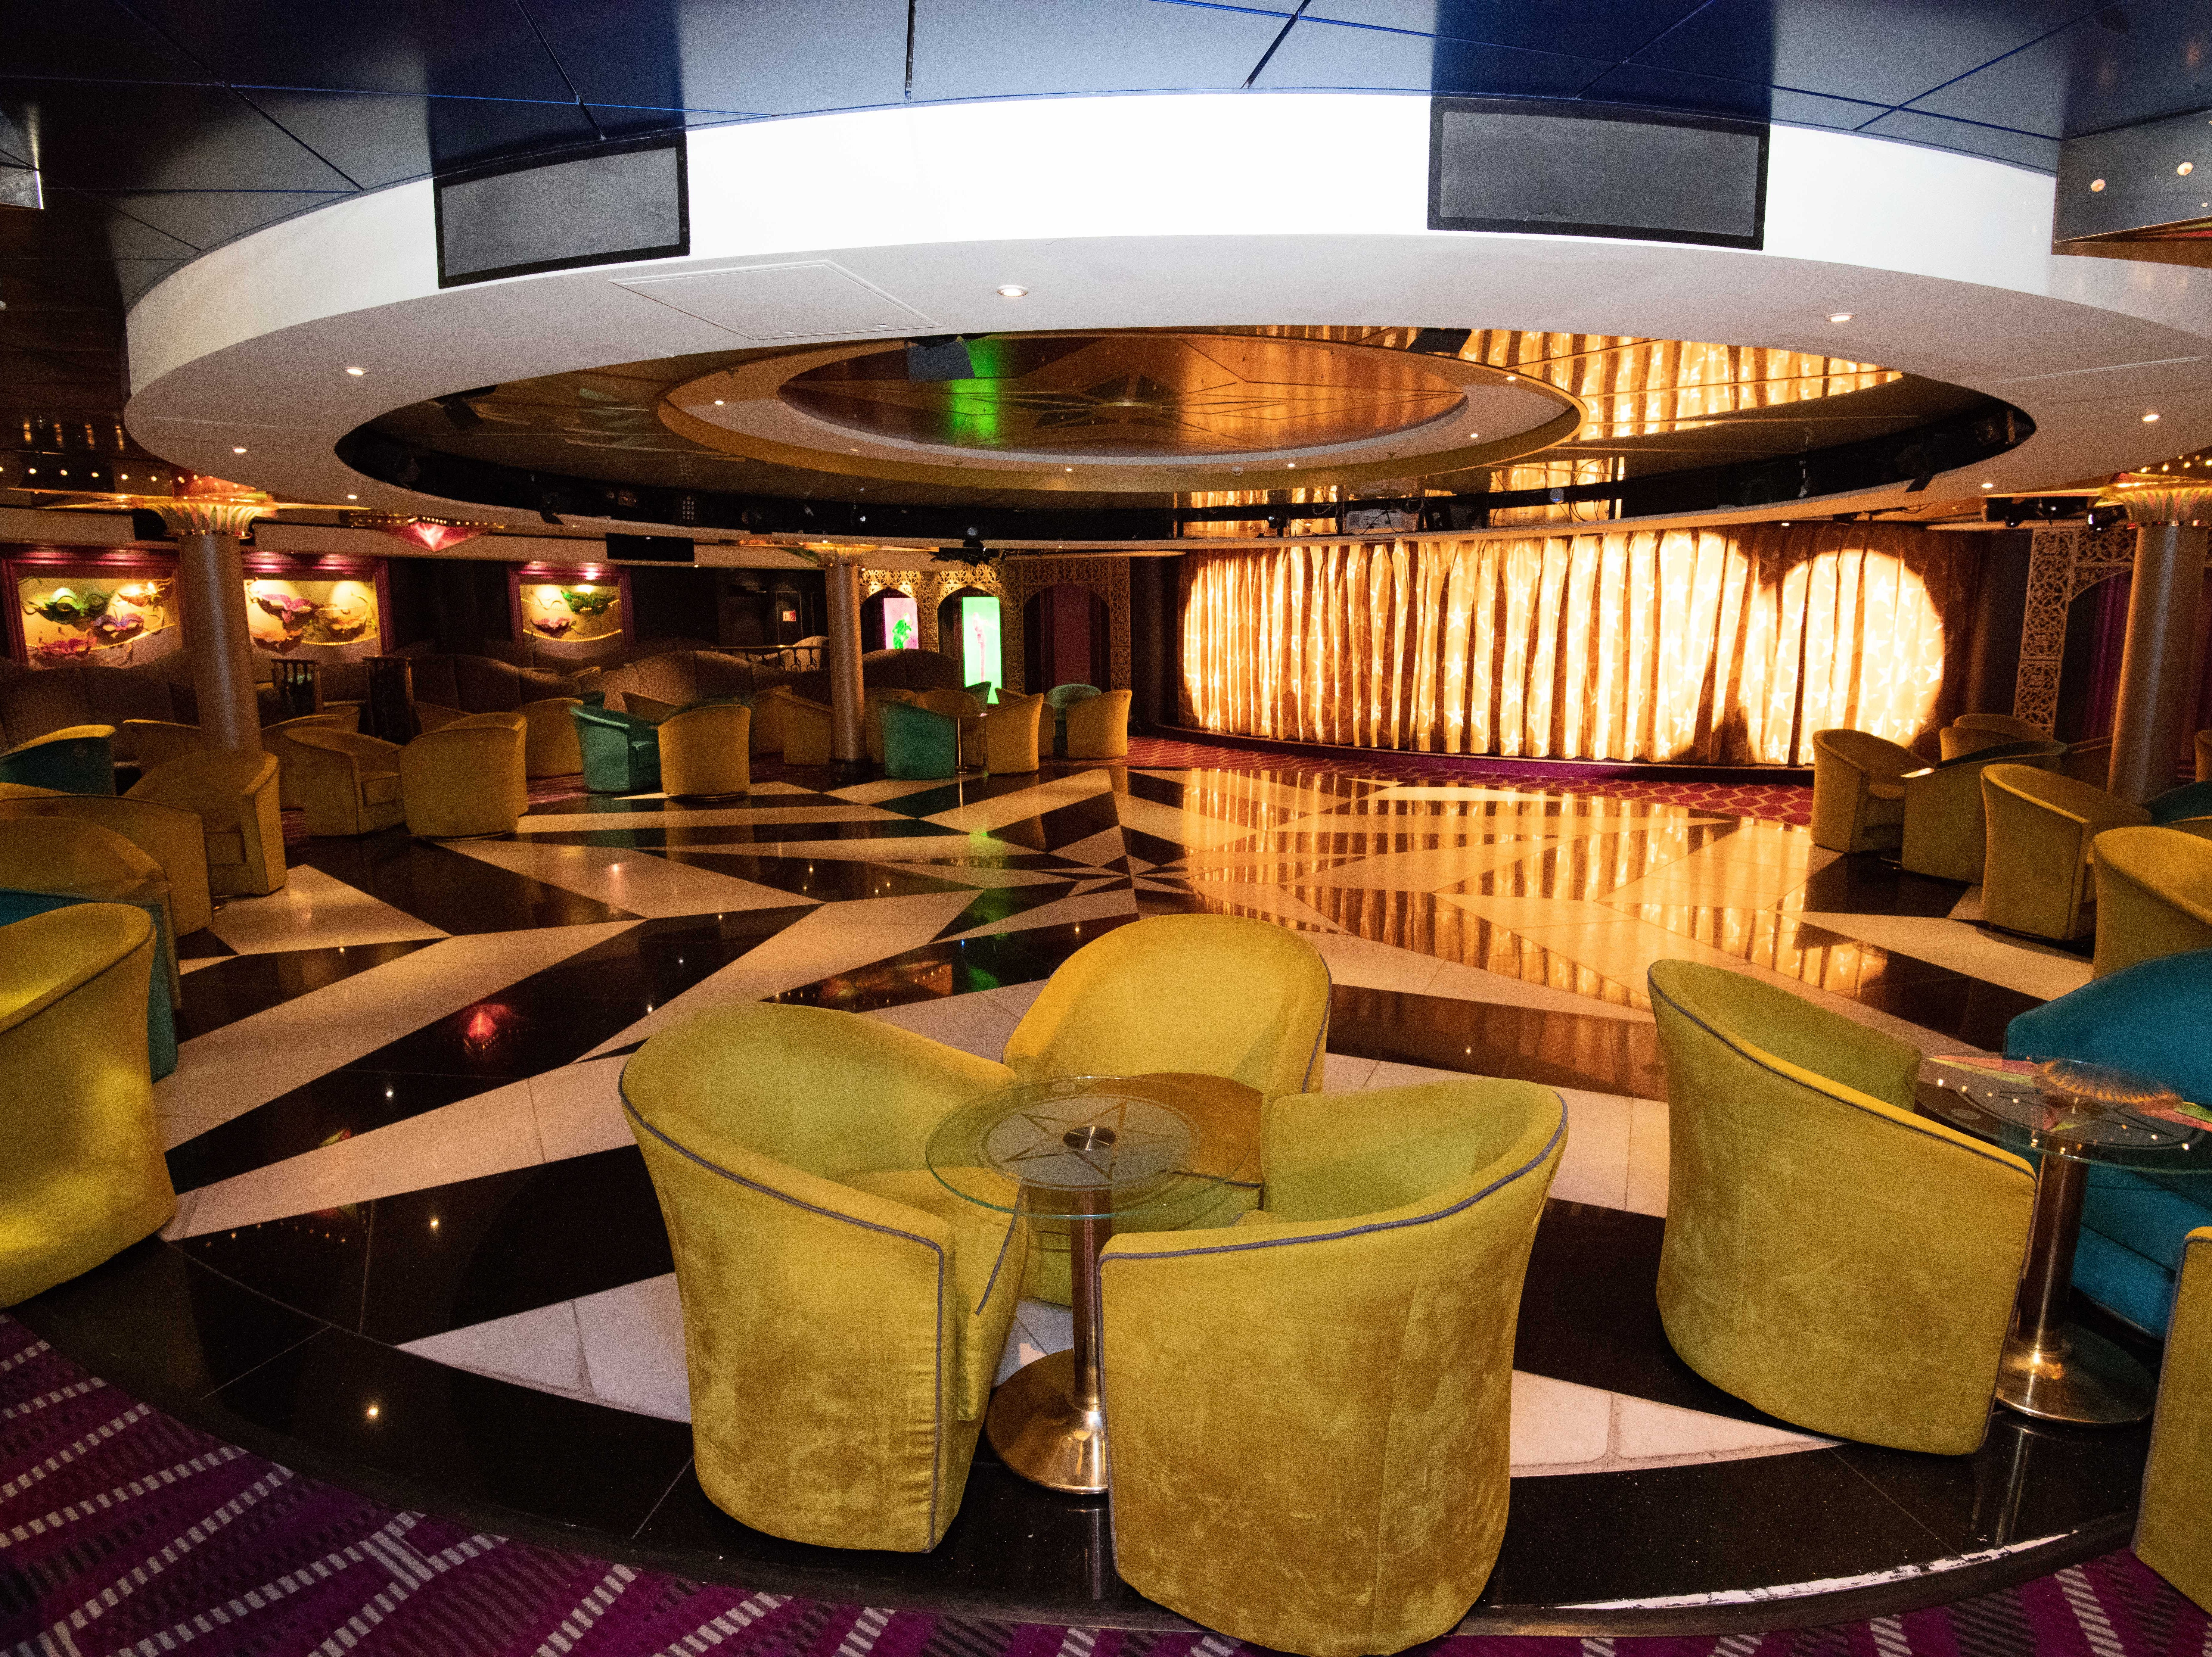 At the back of Deck 6 is the New Orleans-themed Mardi Gras Cabaret Lounge & Nightclub.